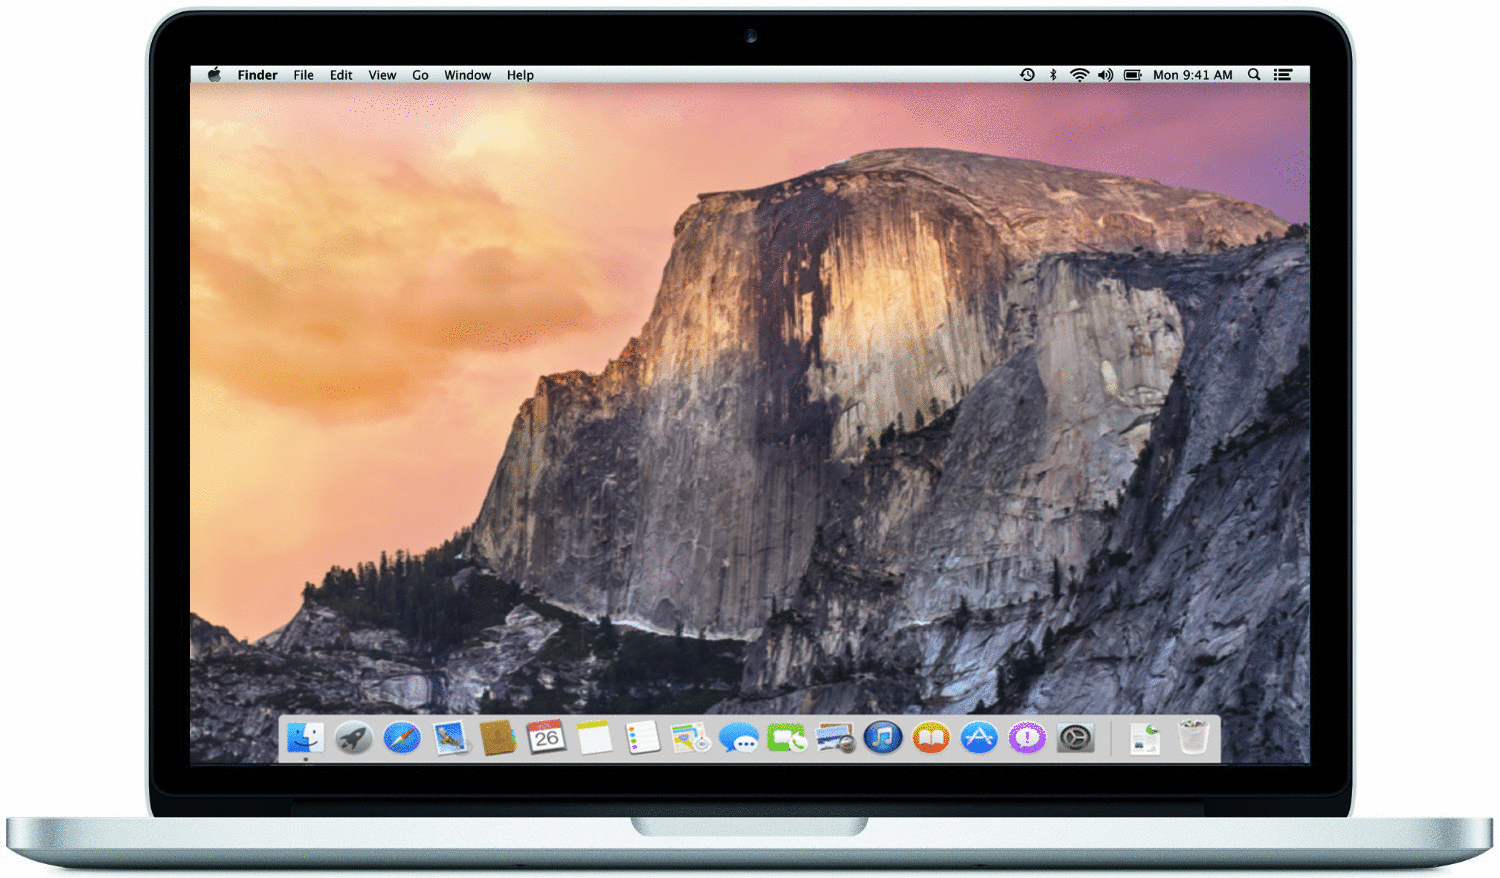 Apple MacBook Pro CTO 13.3 (Retina Display) 3.1 GHz Intel Core i7 8 GB RAM 256 GB PCIe SSD [Early 2015]